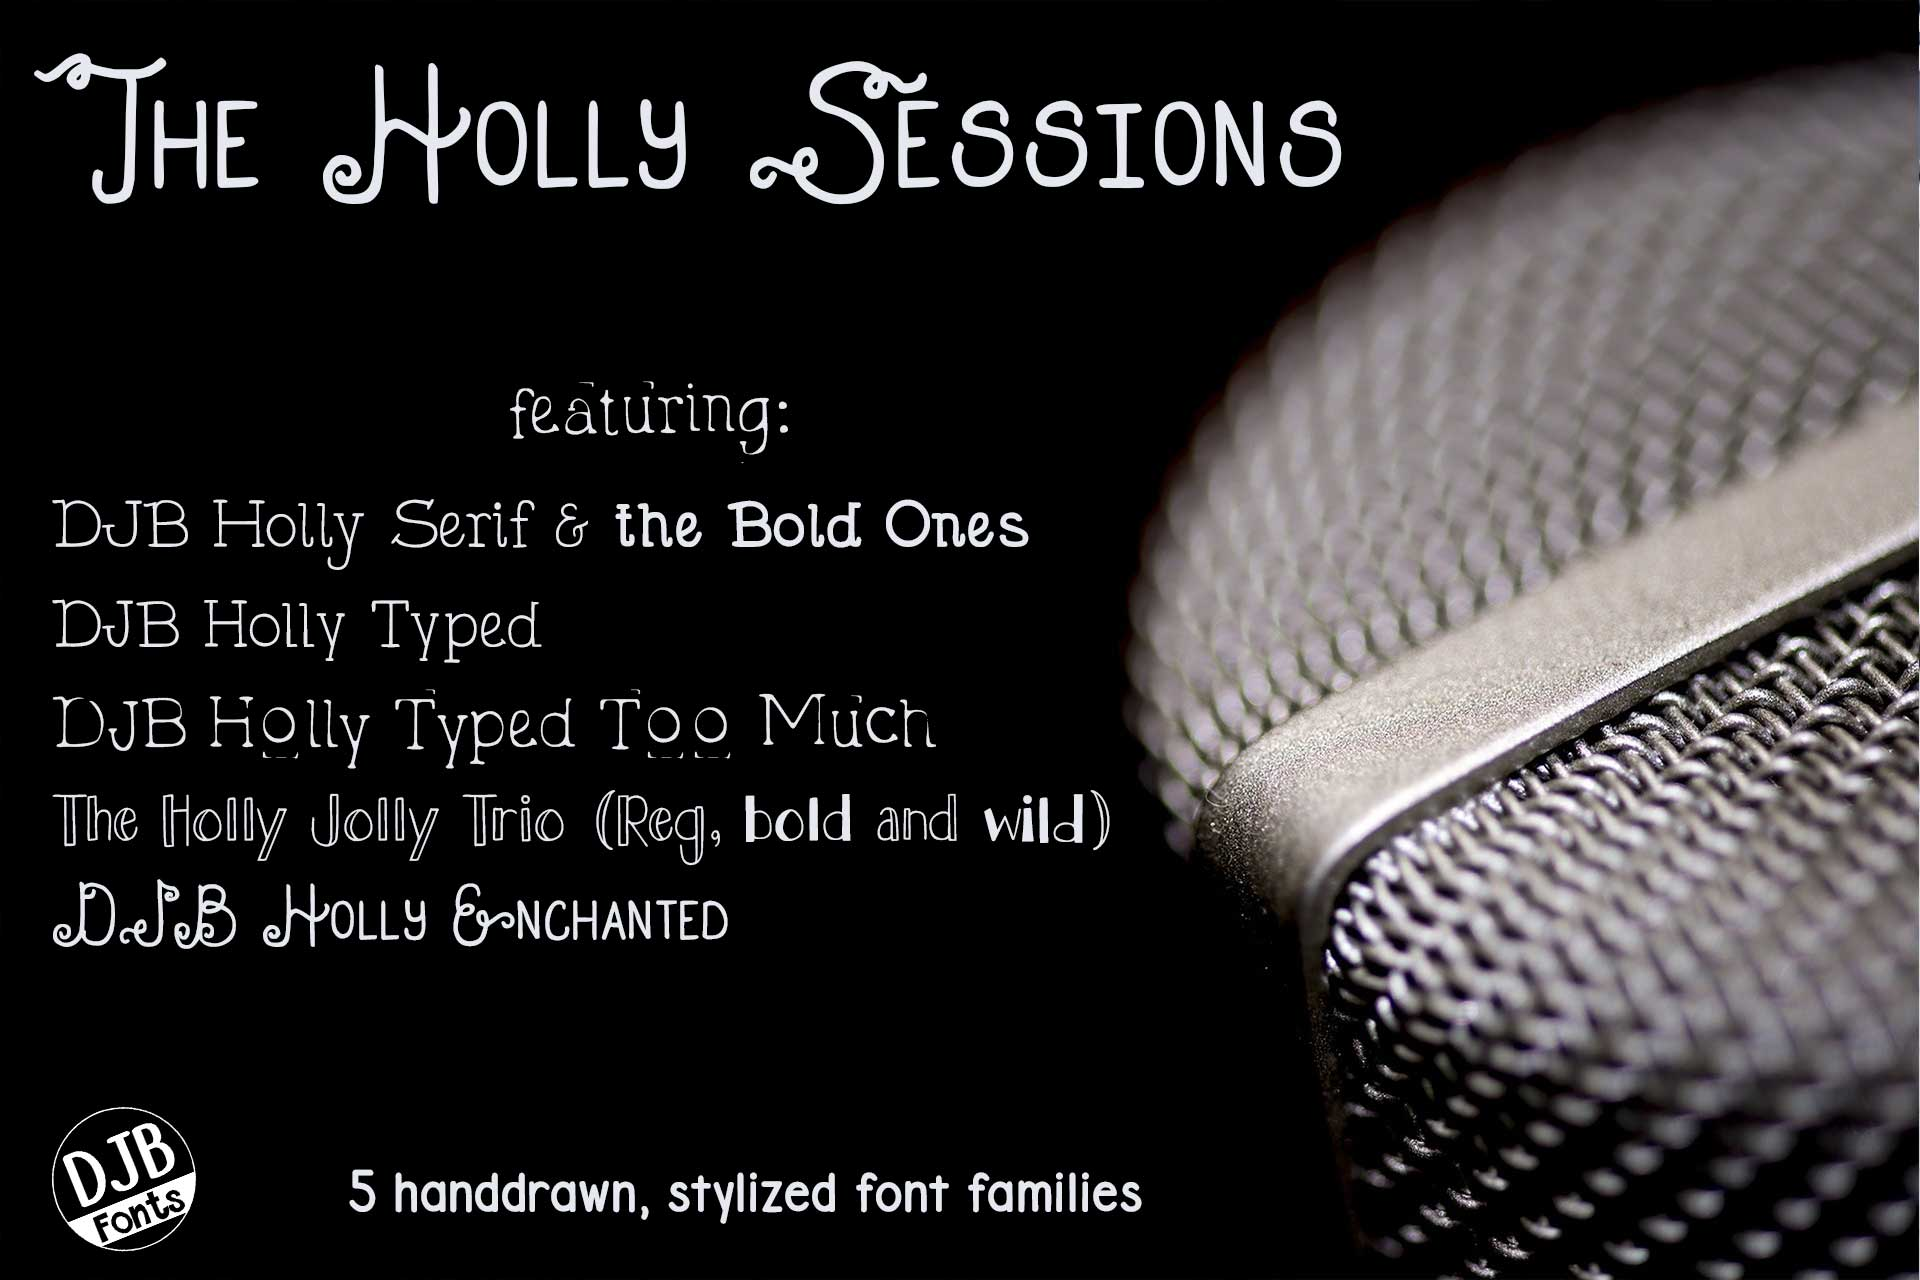 DJB Holly Sessions Font Bundle example image 1